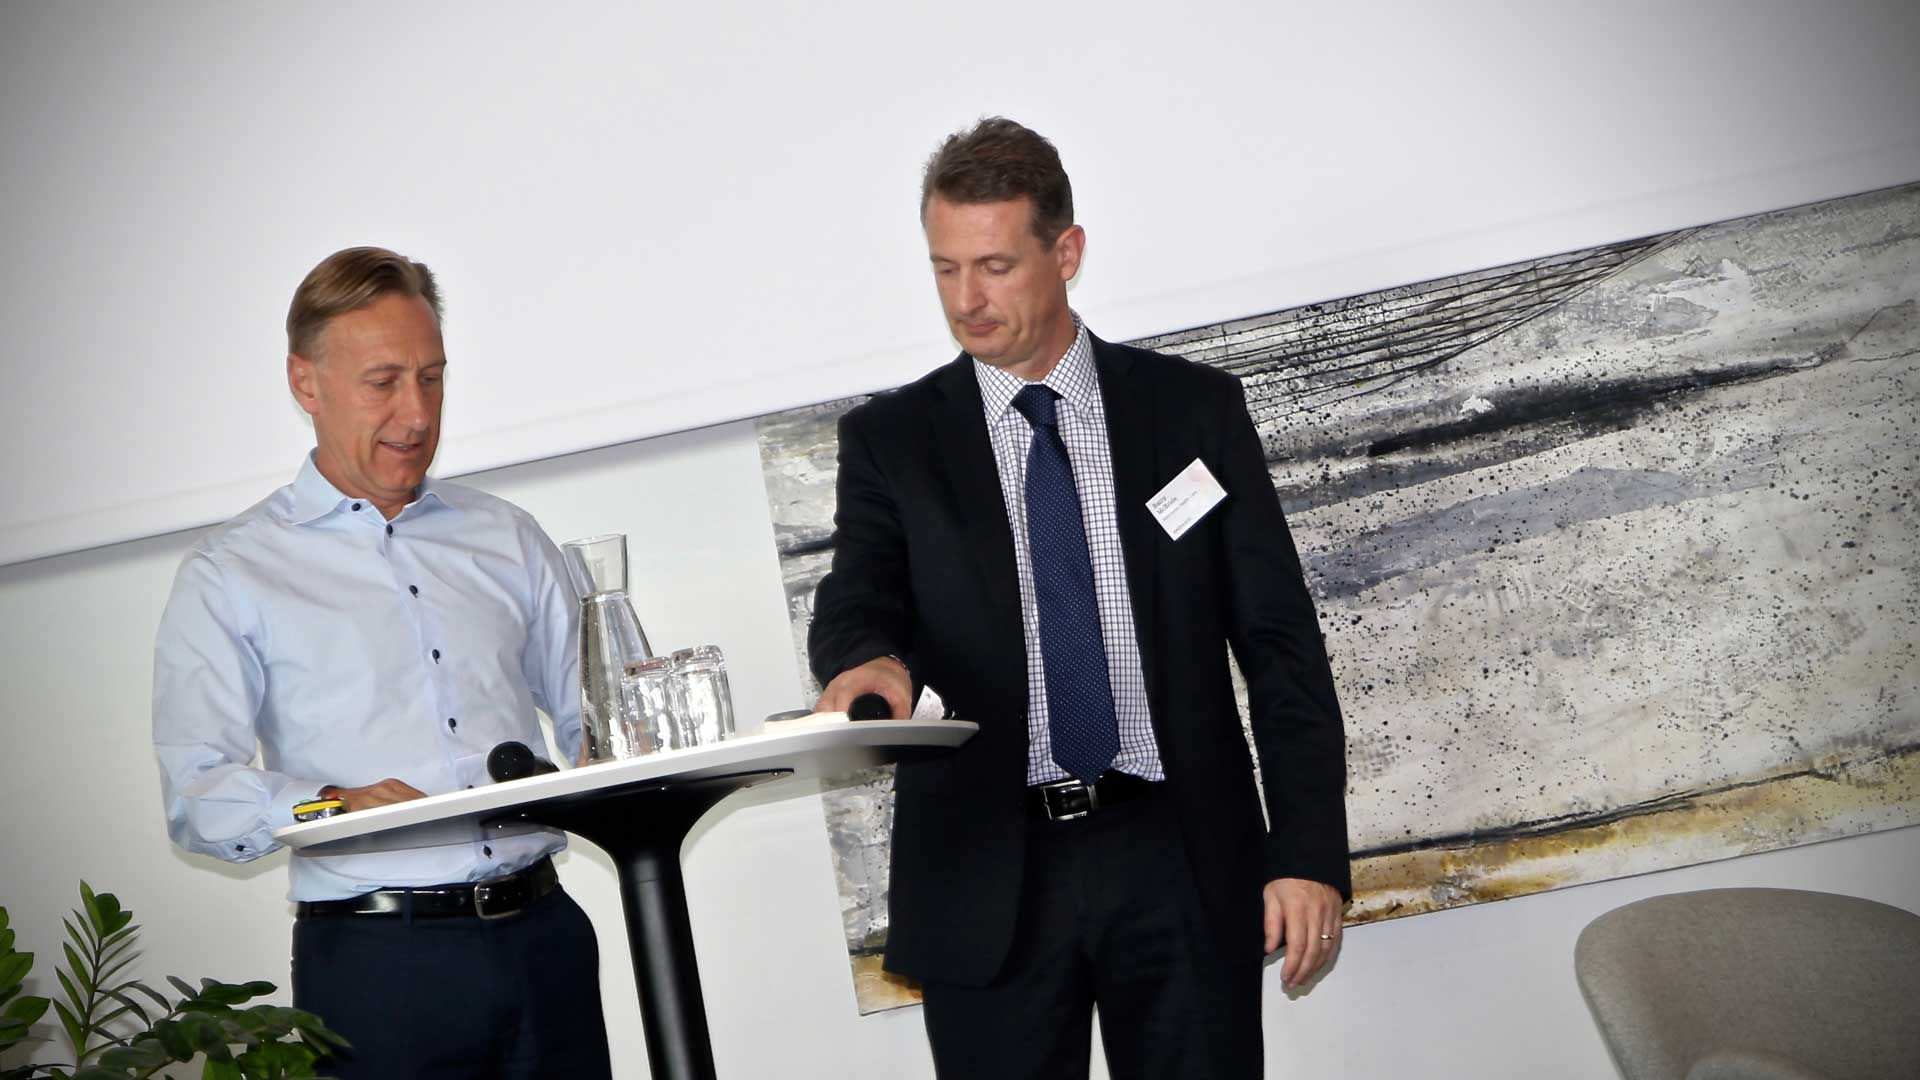 AstraZeneca's CEO Sweden, Jan-Olof Jacke, signing the agreement with Mölnlycke's Executive Vice President for R&D, Barry McBride